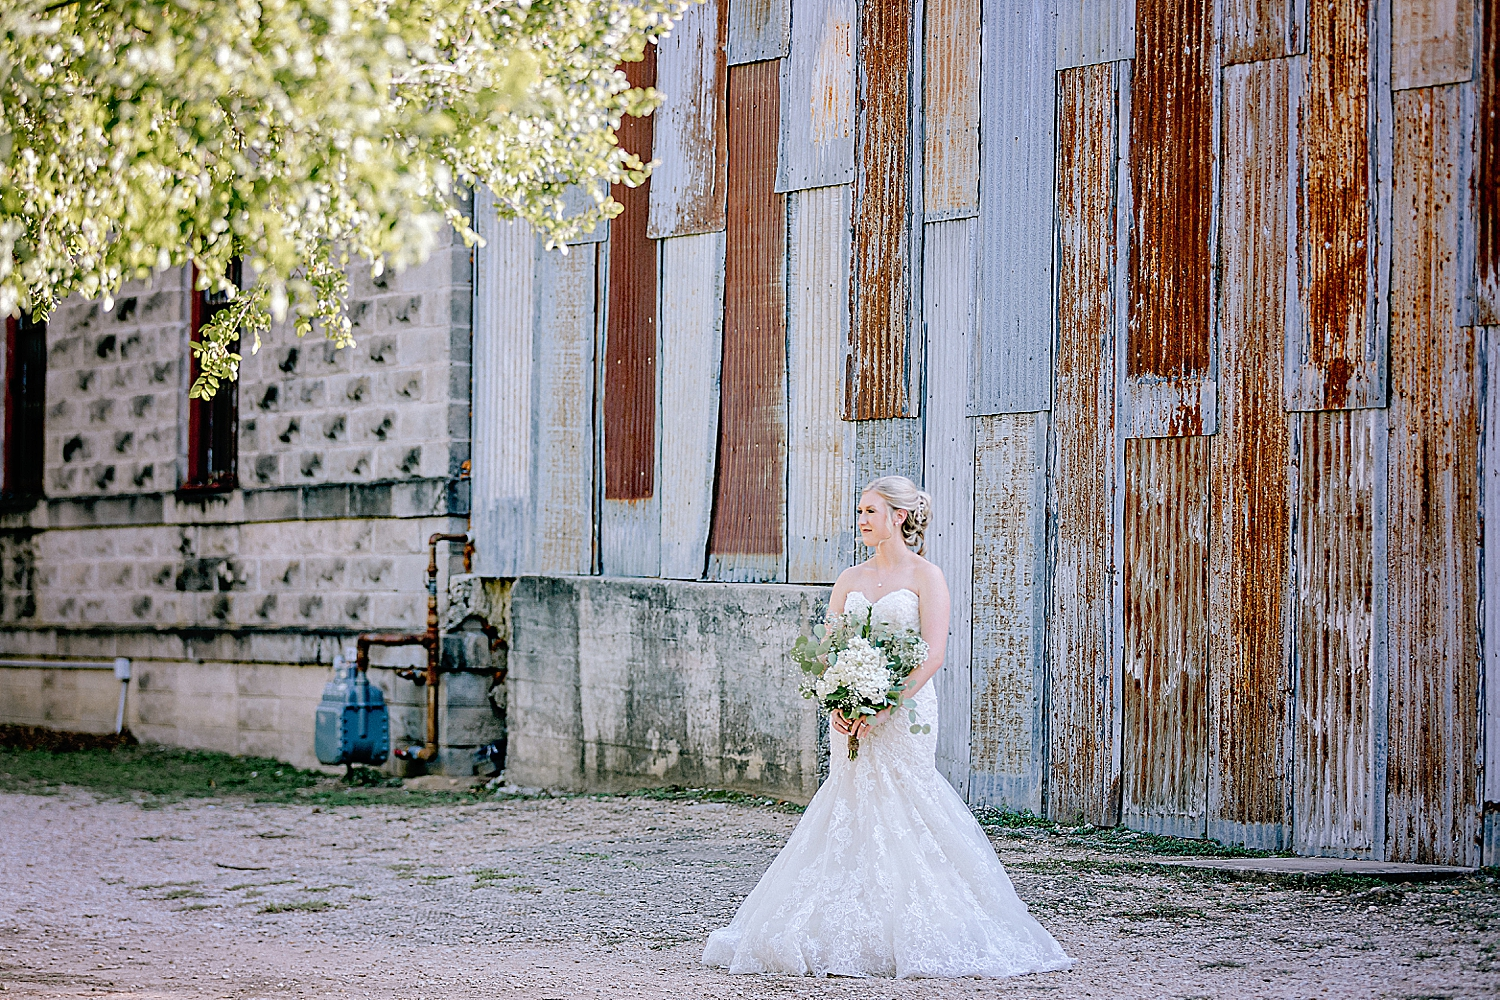 Carly-Barton-Photography-Bridal-Photos-Gruene-Rustic-New-Braunfels-Wedding-Photographer_0018.jpg